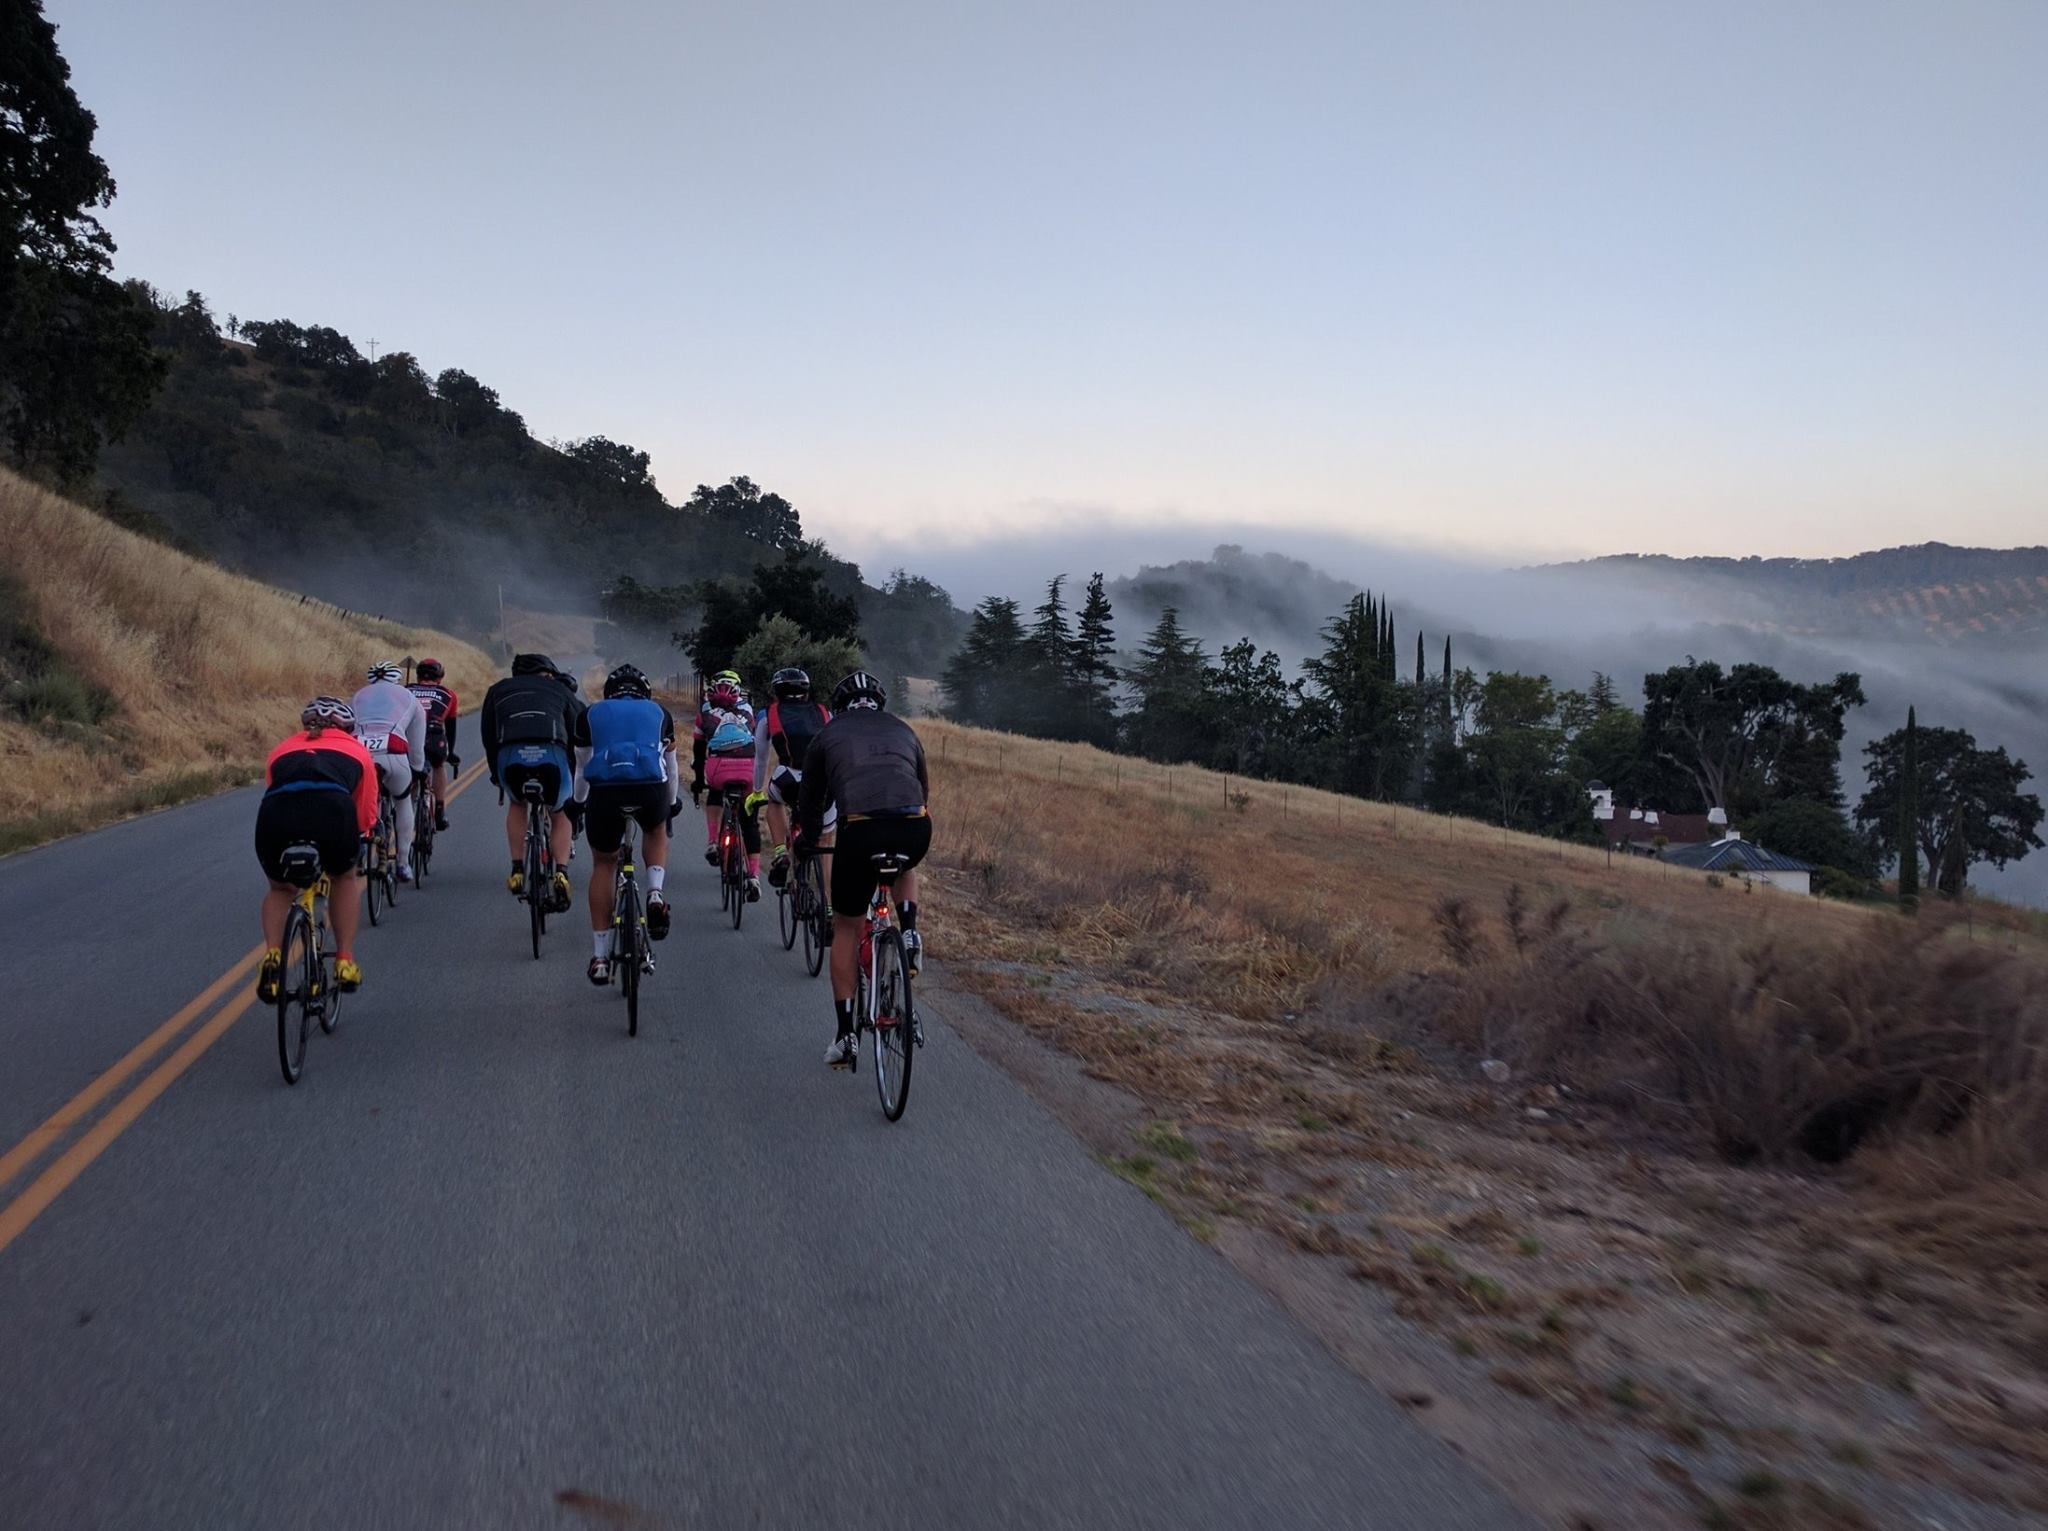 Riding up the first climbs, we watch the fog burn off the hilltops.